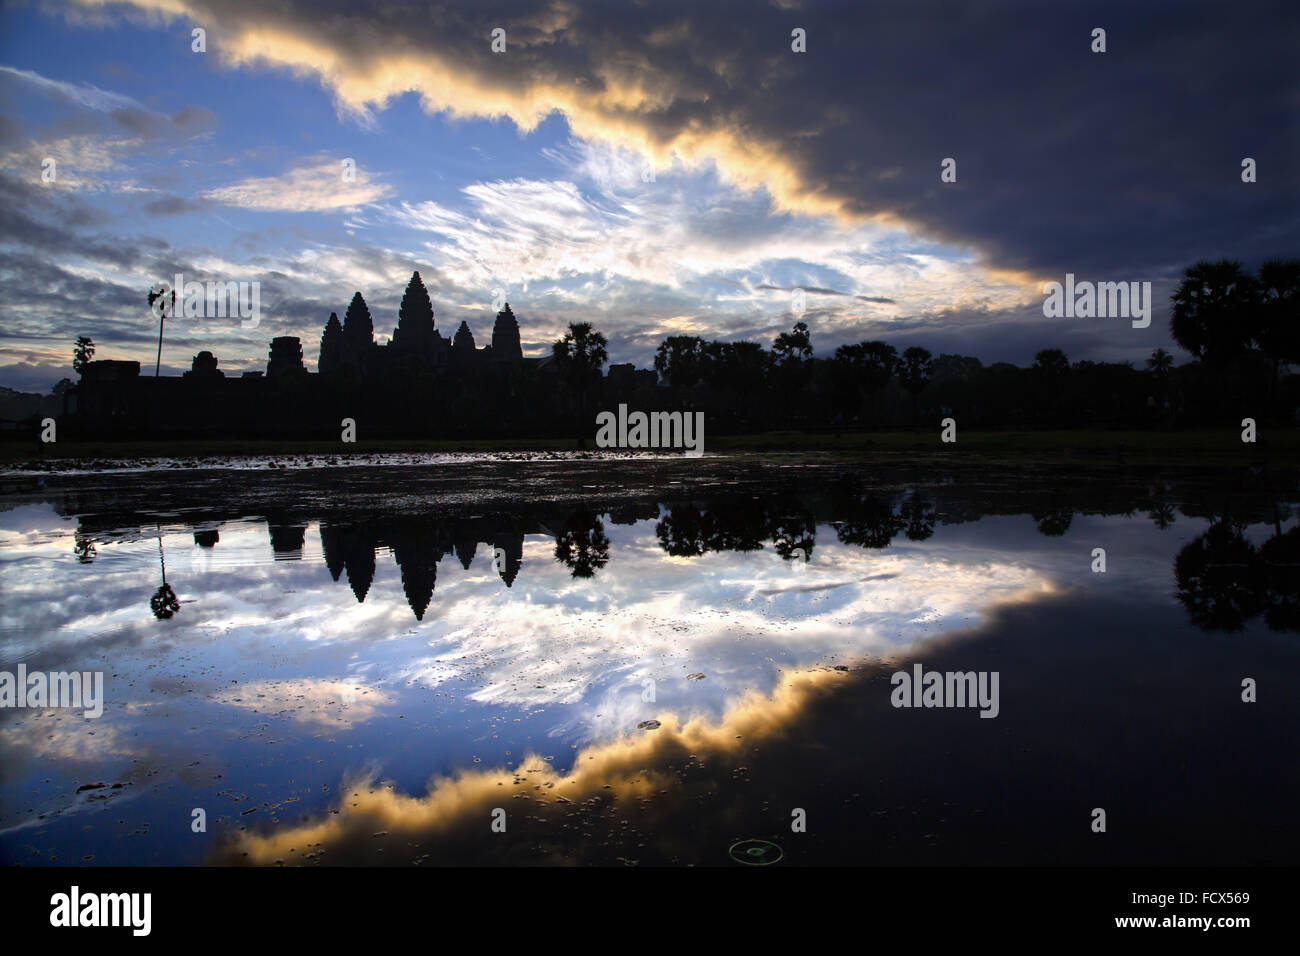 Amazing sunrise on Angkor Vat, Cambodia - Stock Image